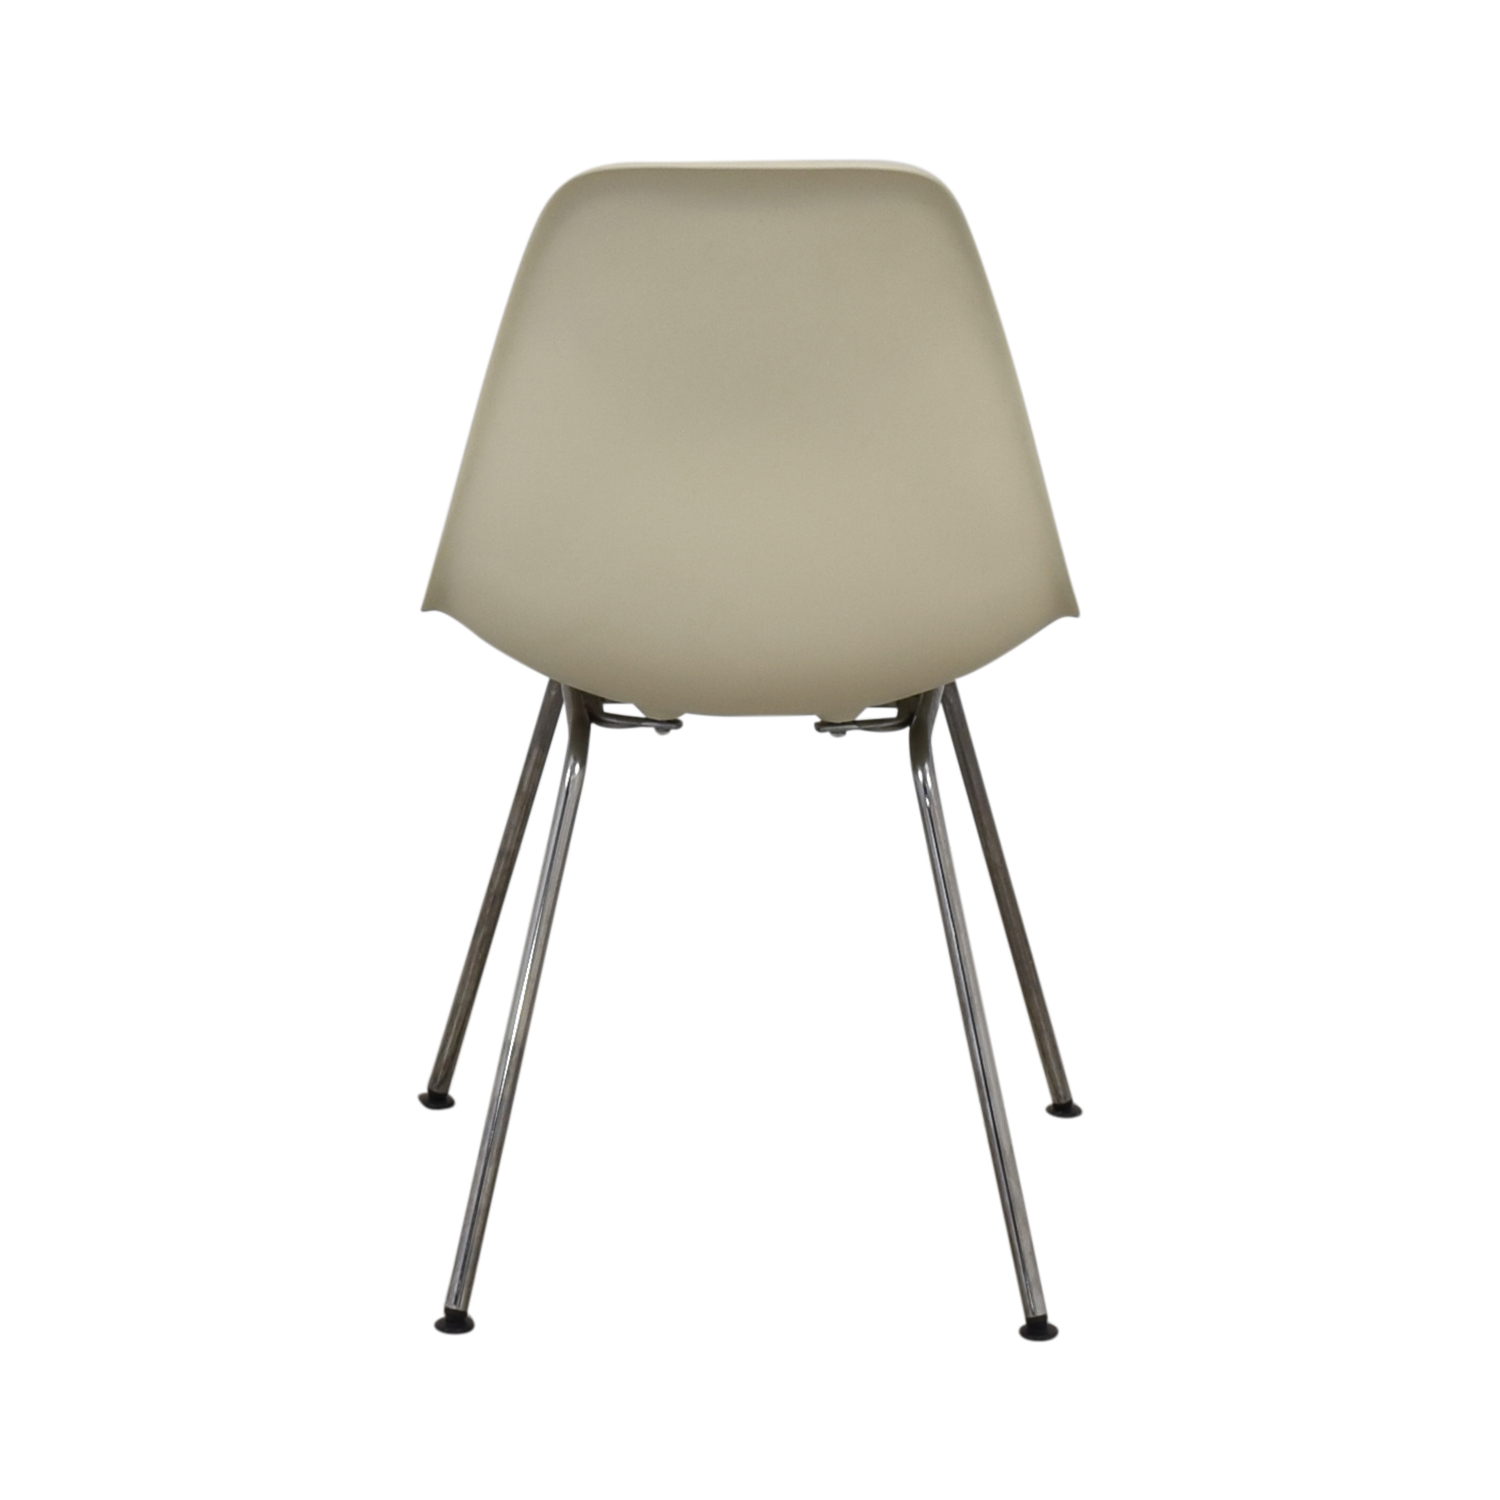 buy Design Within Reach Design Within Reach Eames Molded Plastic 4 Leg Side Chair online